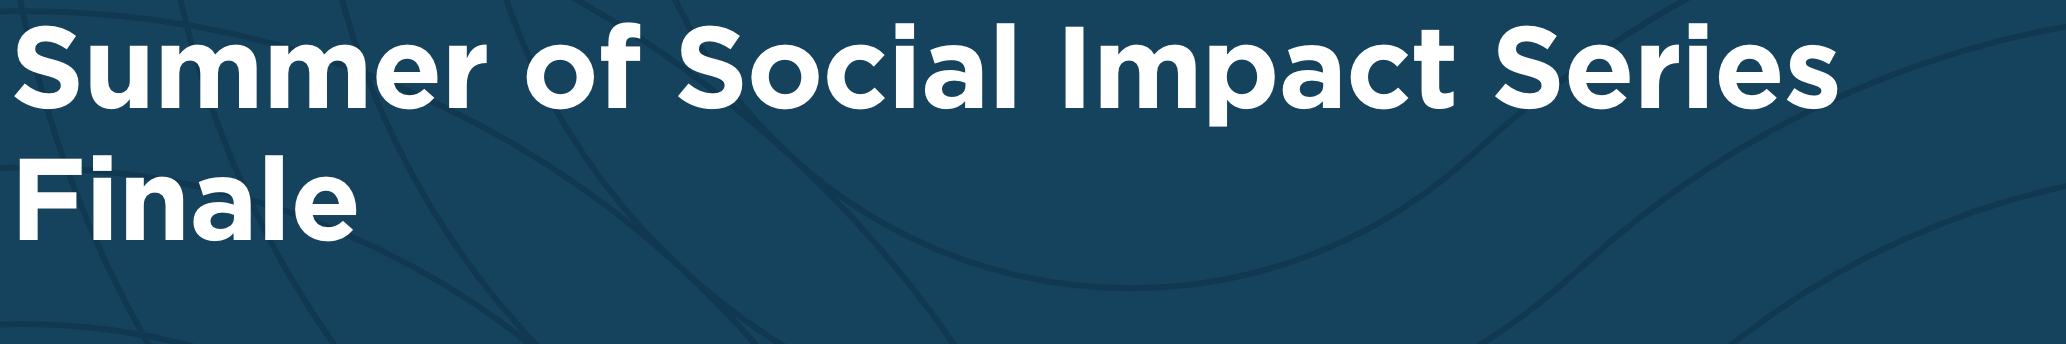 Summer of Social Impact Series: Machine Learning and Public Policy